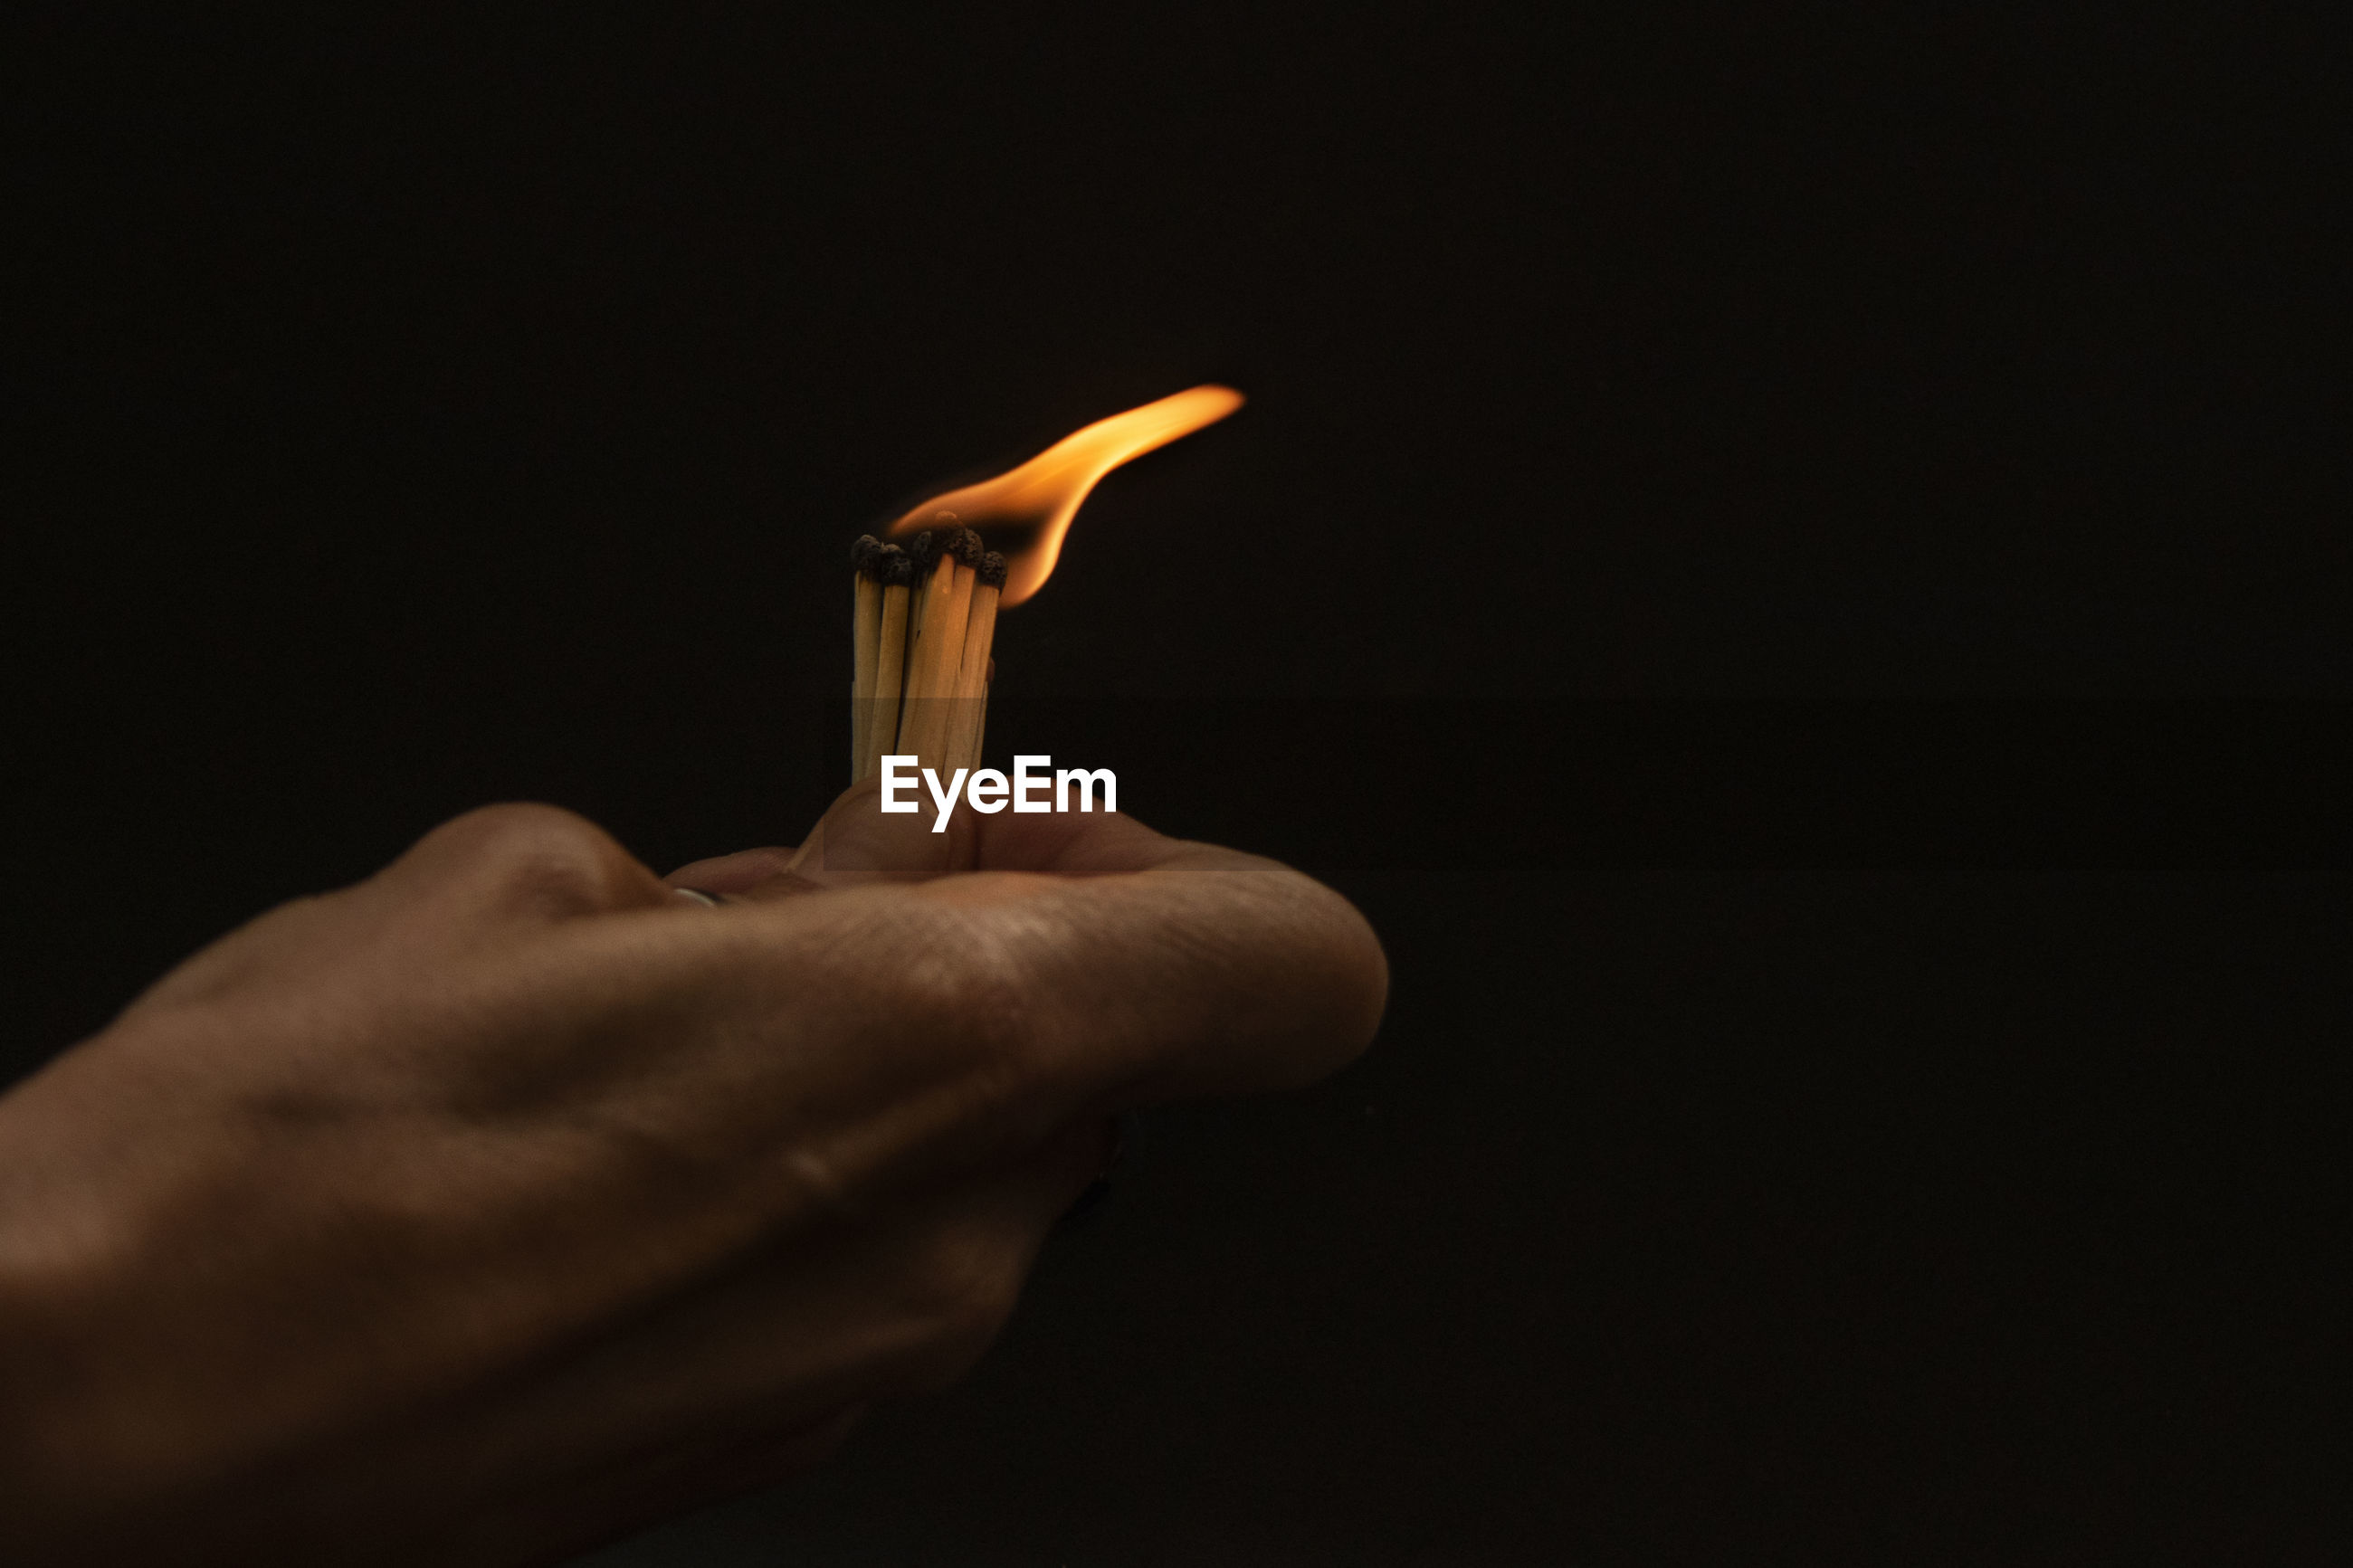 Close-up of hand holding matchsticks against black background